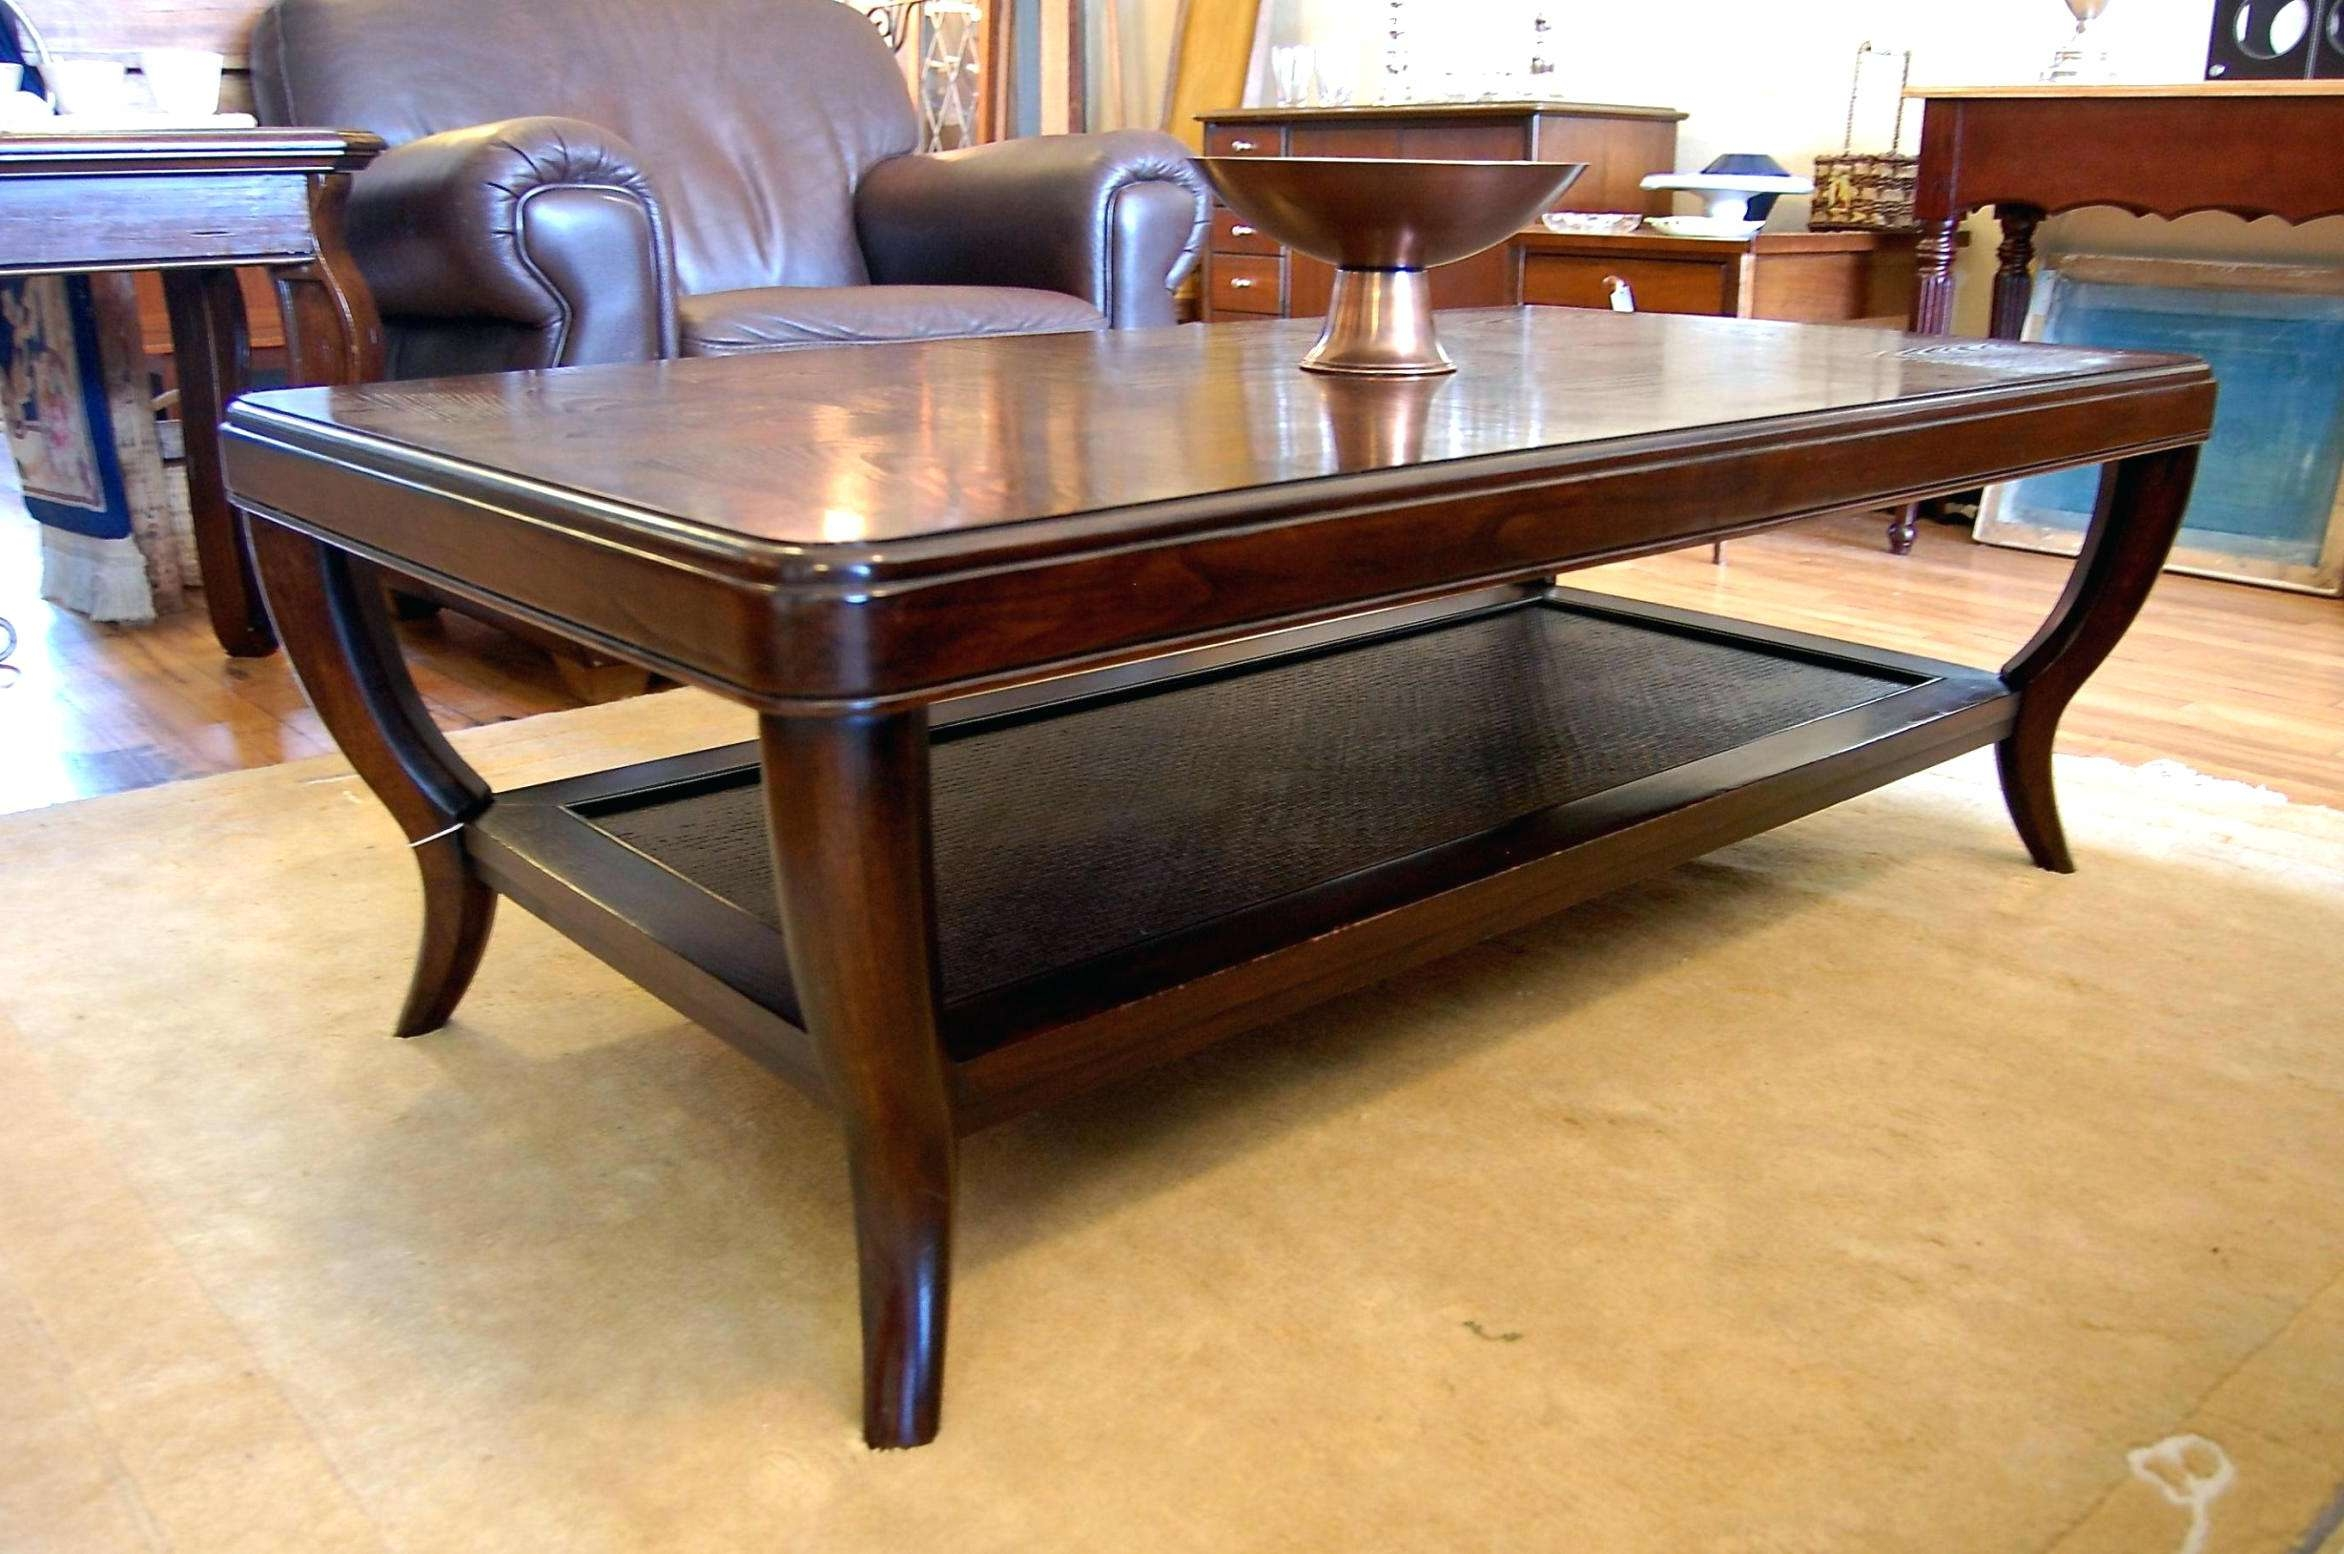 Engaging Large Wood Coffee Table Best Collection Of Square Dark Intended For Current Huge Coffee Tables (Gallery 3 of 20)